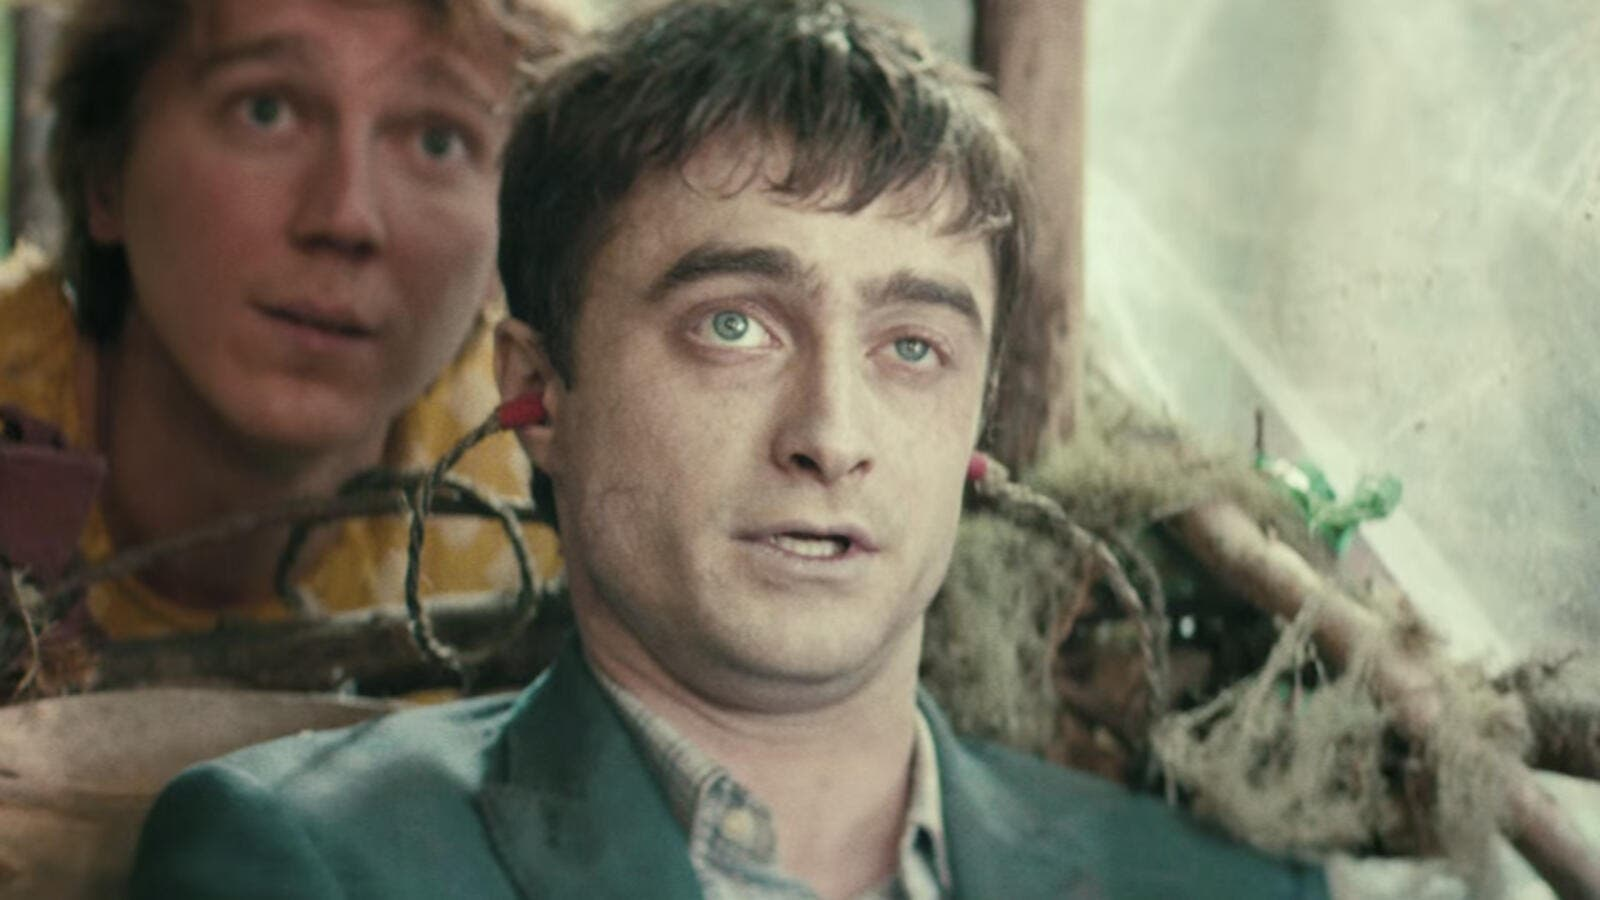 Maskoon will open with Dan Kwan and Daniel Scheinert's adventure/comedy Swiss Army Man, starring Daniel Radcliffe and Paul Dano. (YouTube)